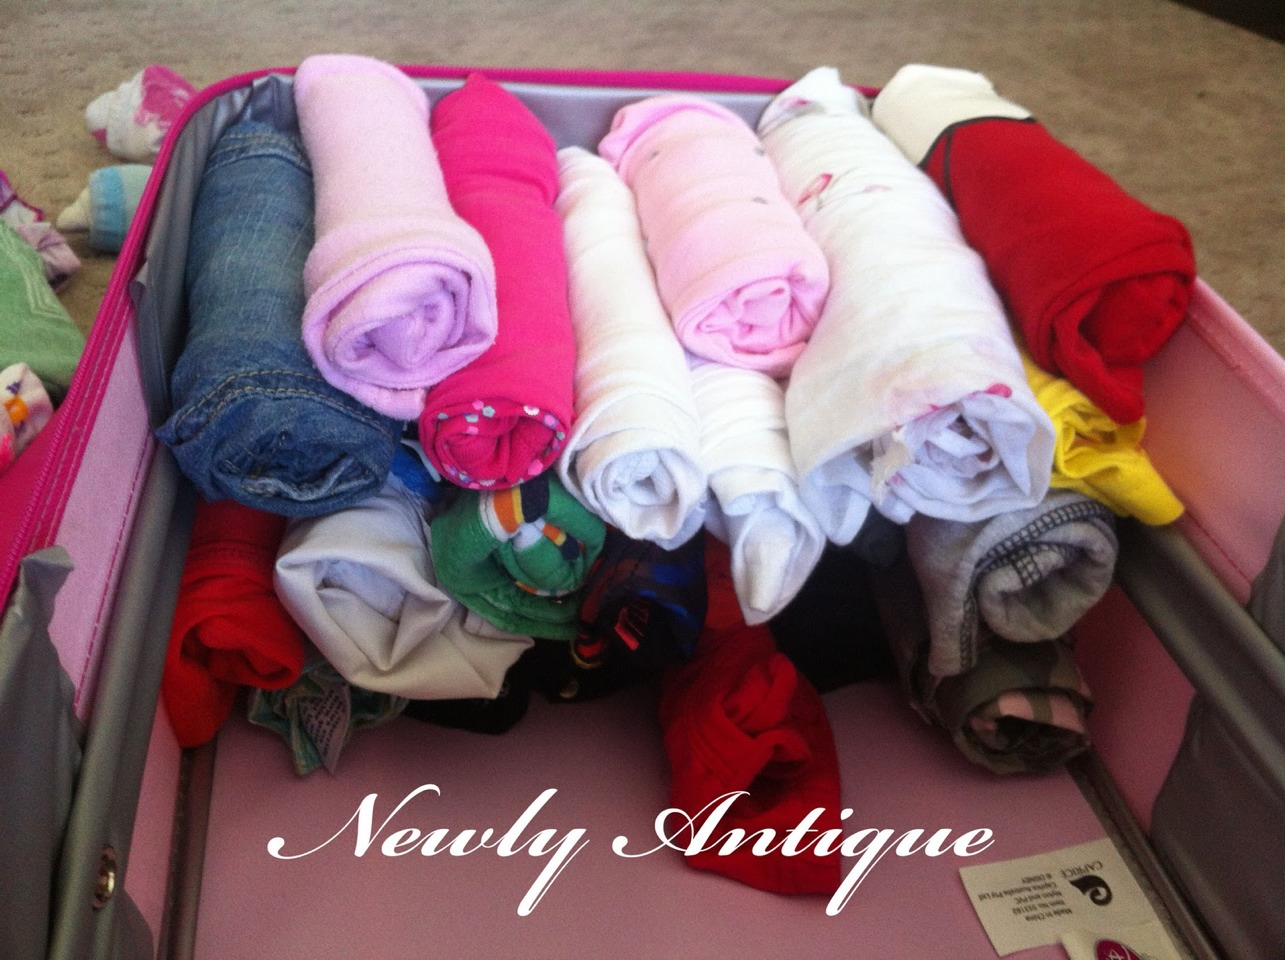 Roll clothes instead or fold to save space and prevent and even get rid if wrinkles.